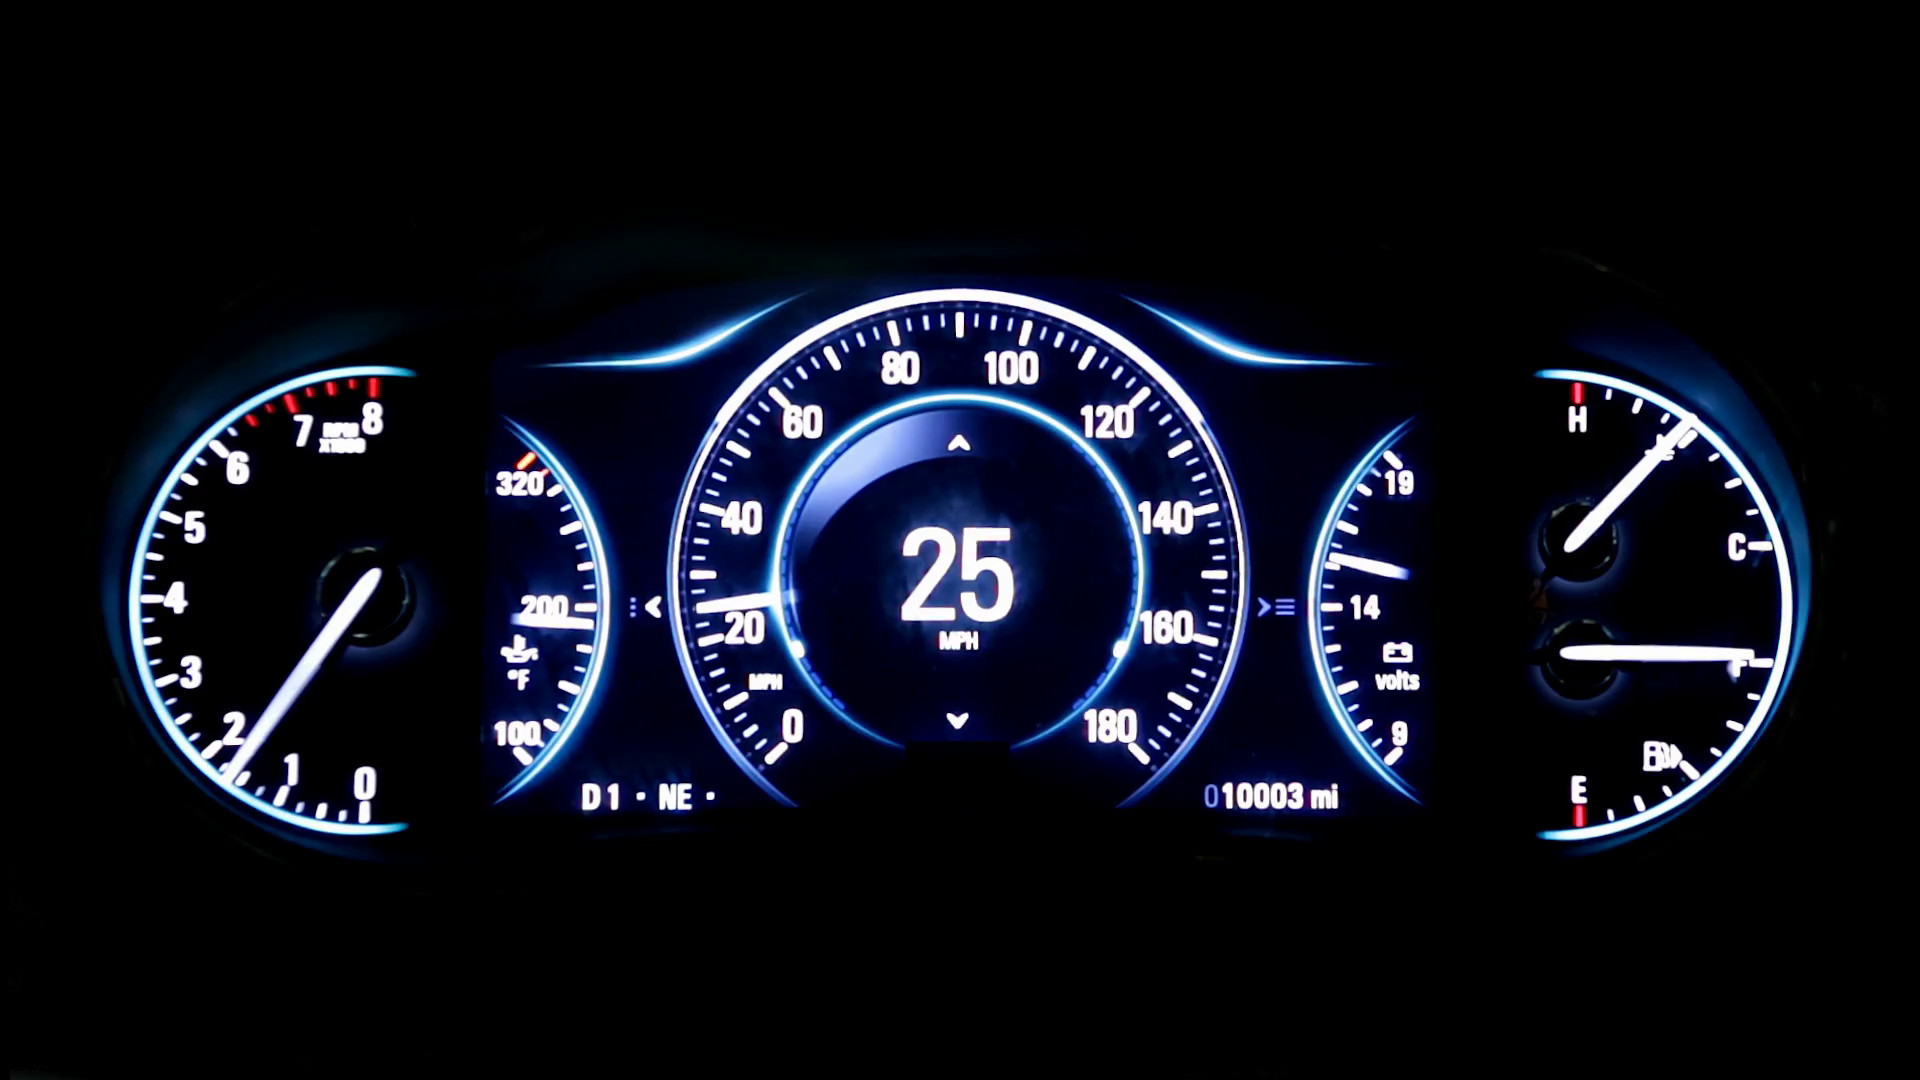 1920x1080 Modern light car mileage (dashboard, milage) isolated on a black background.  New display of a modern car. RPM, Fuel indicator and temperature. Sport.  mph.